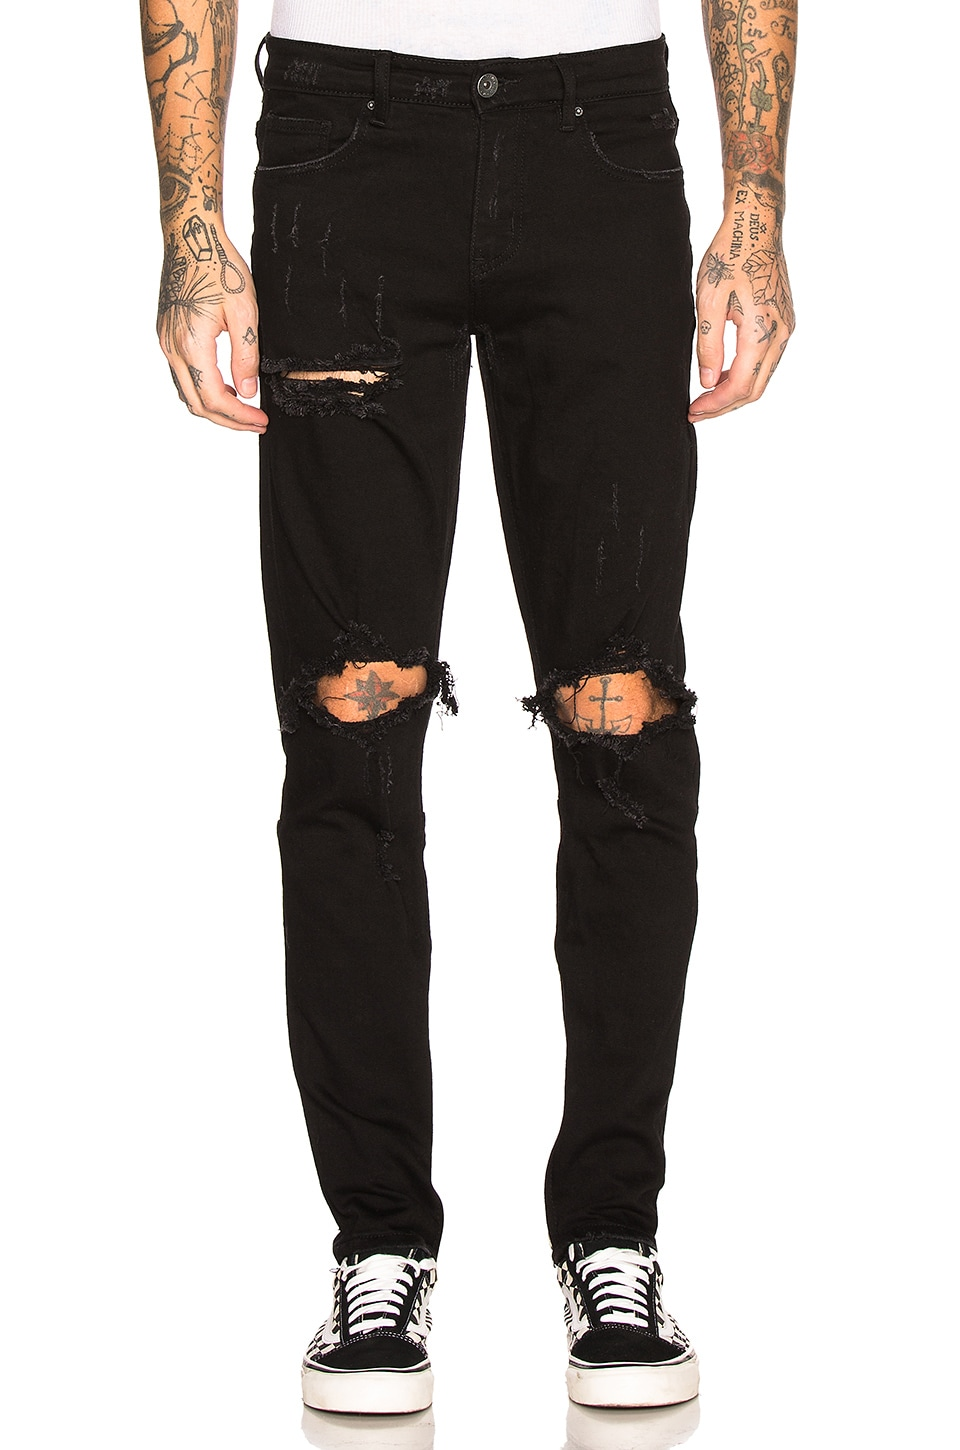 Crysp Denim Pacific Ripped Jean in Black